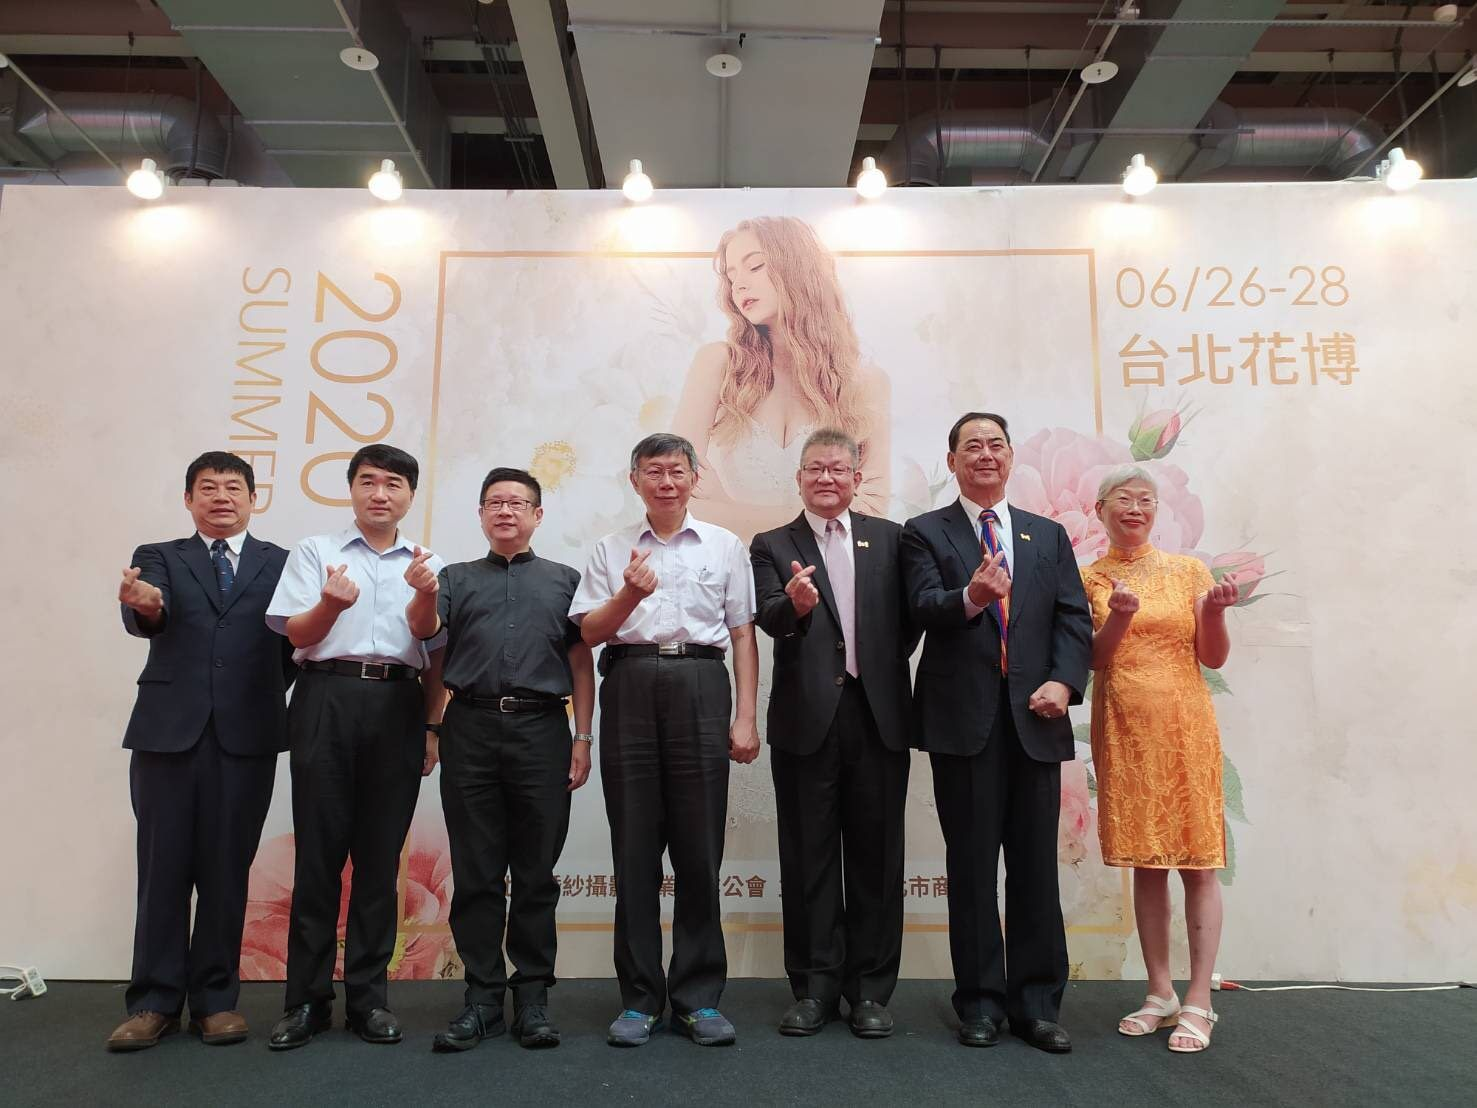 Mayor attending the opening event of the Taipei Wedding Shopping Festival